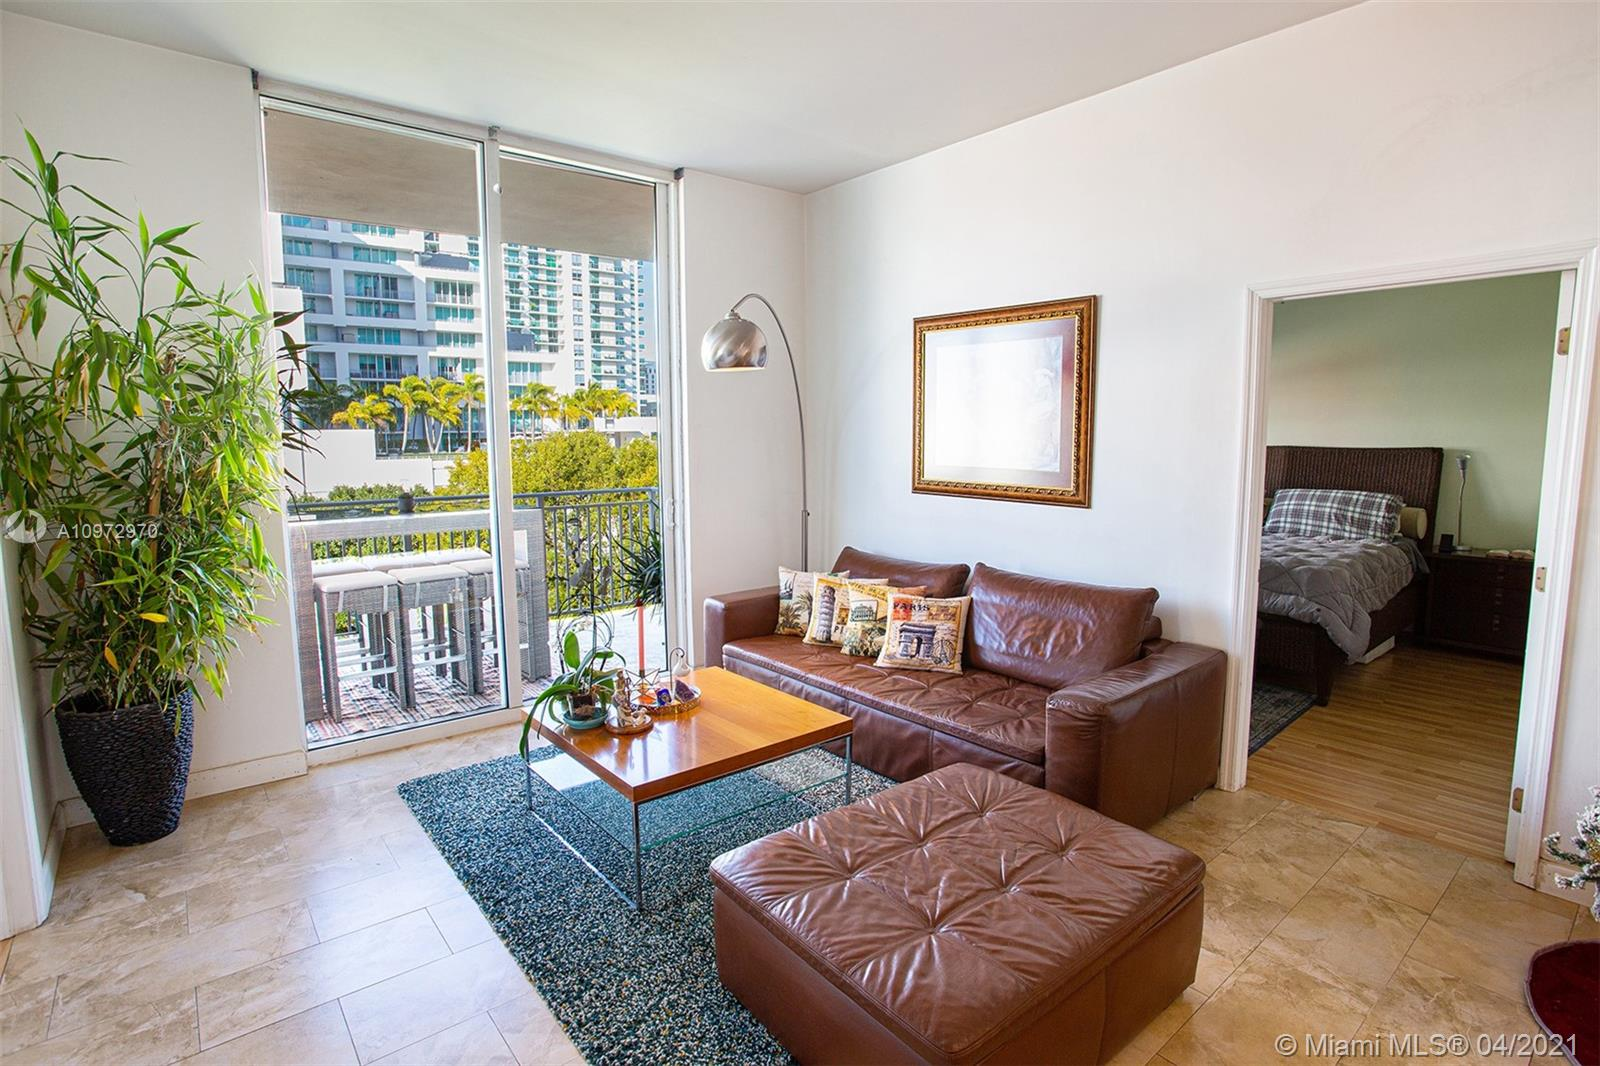 Uptown Lofts #601 - 2275 Biscayne Blvd #601, Miami, FL 33137